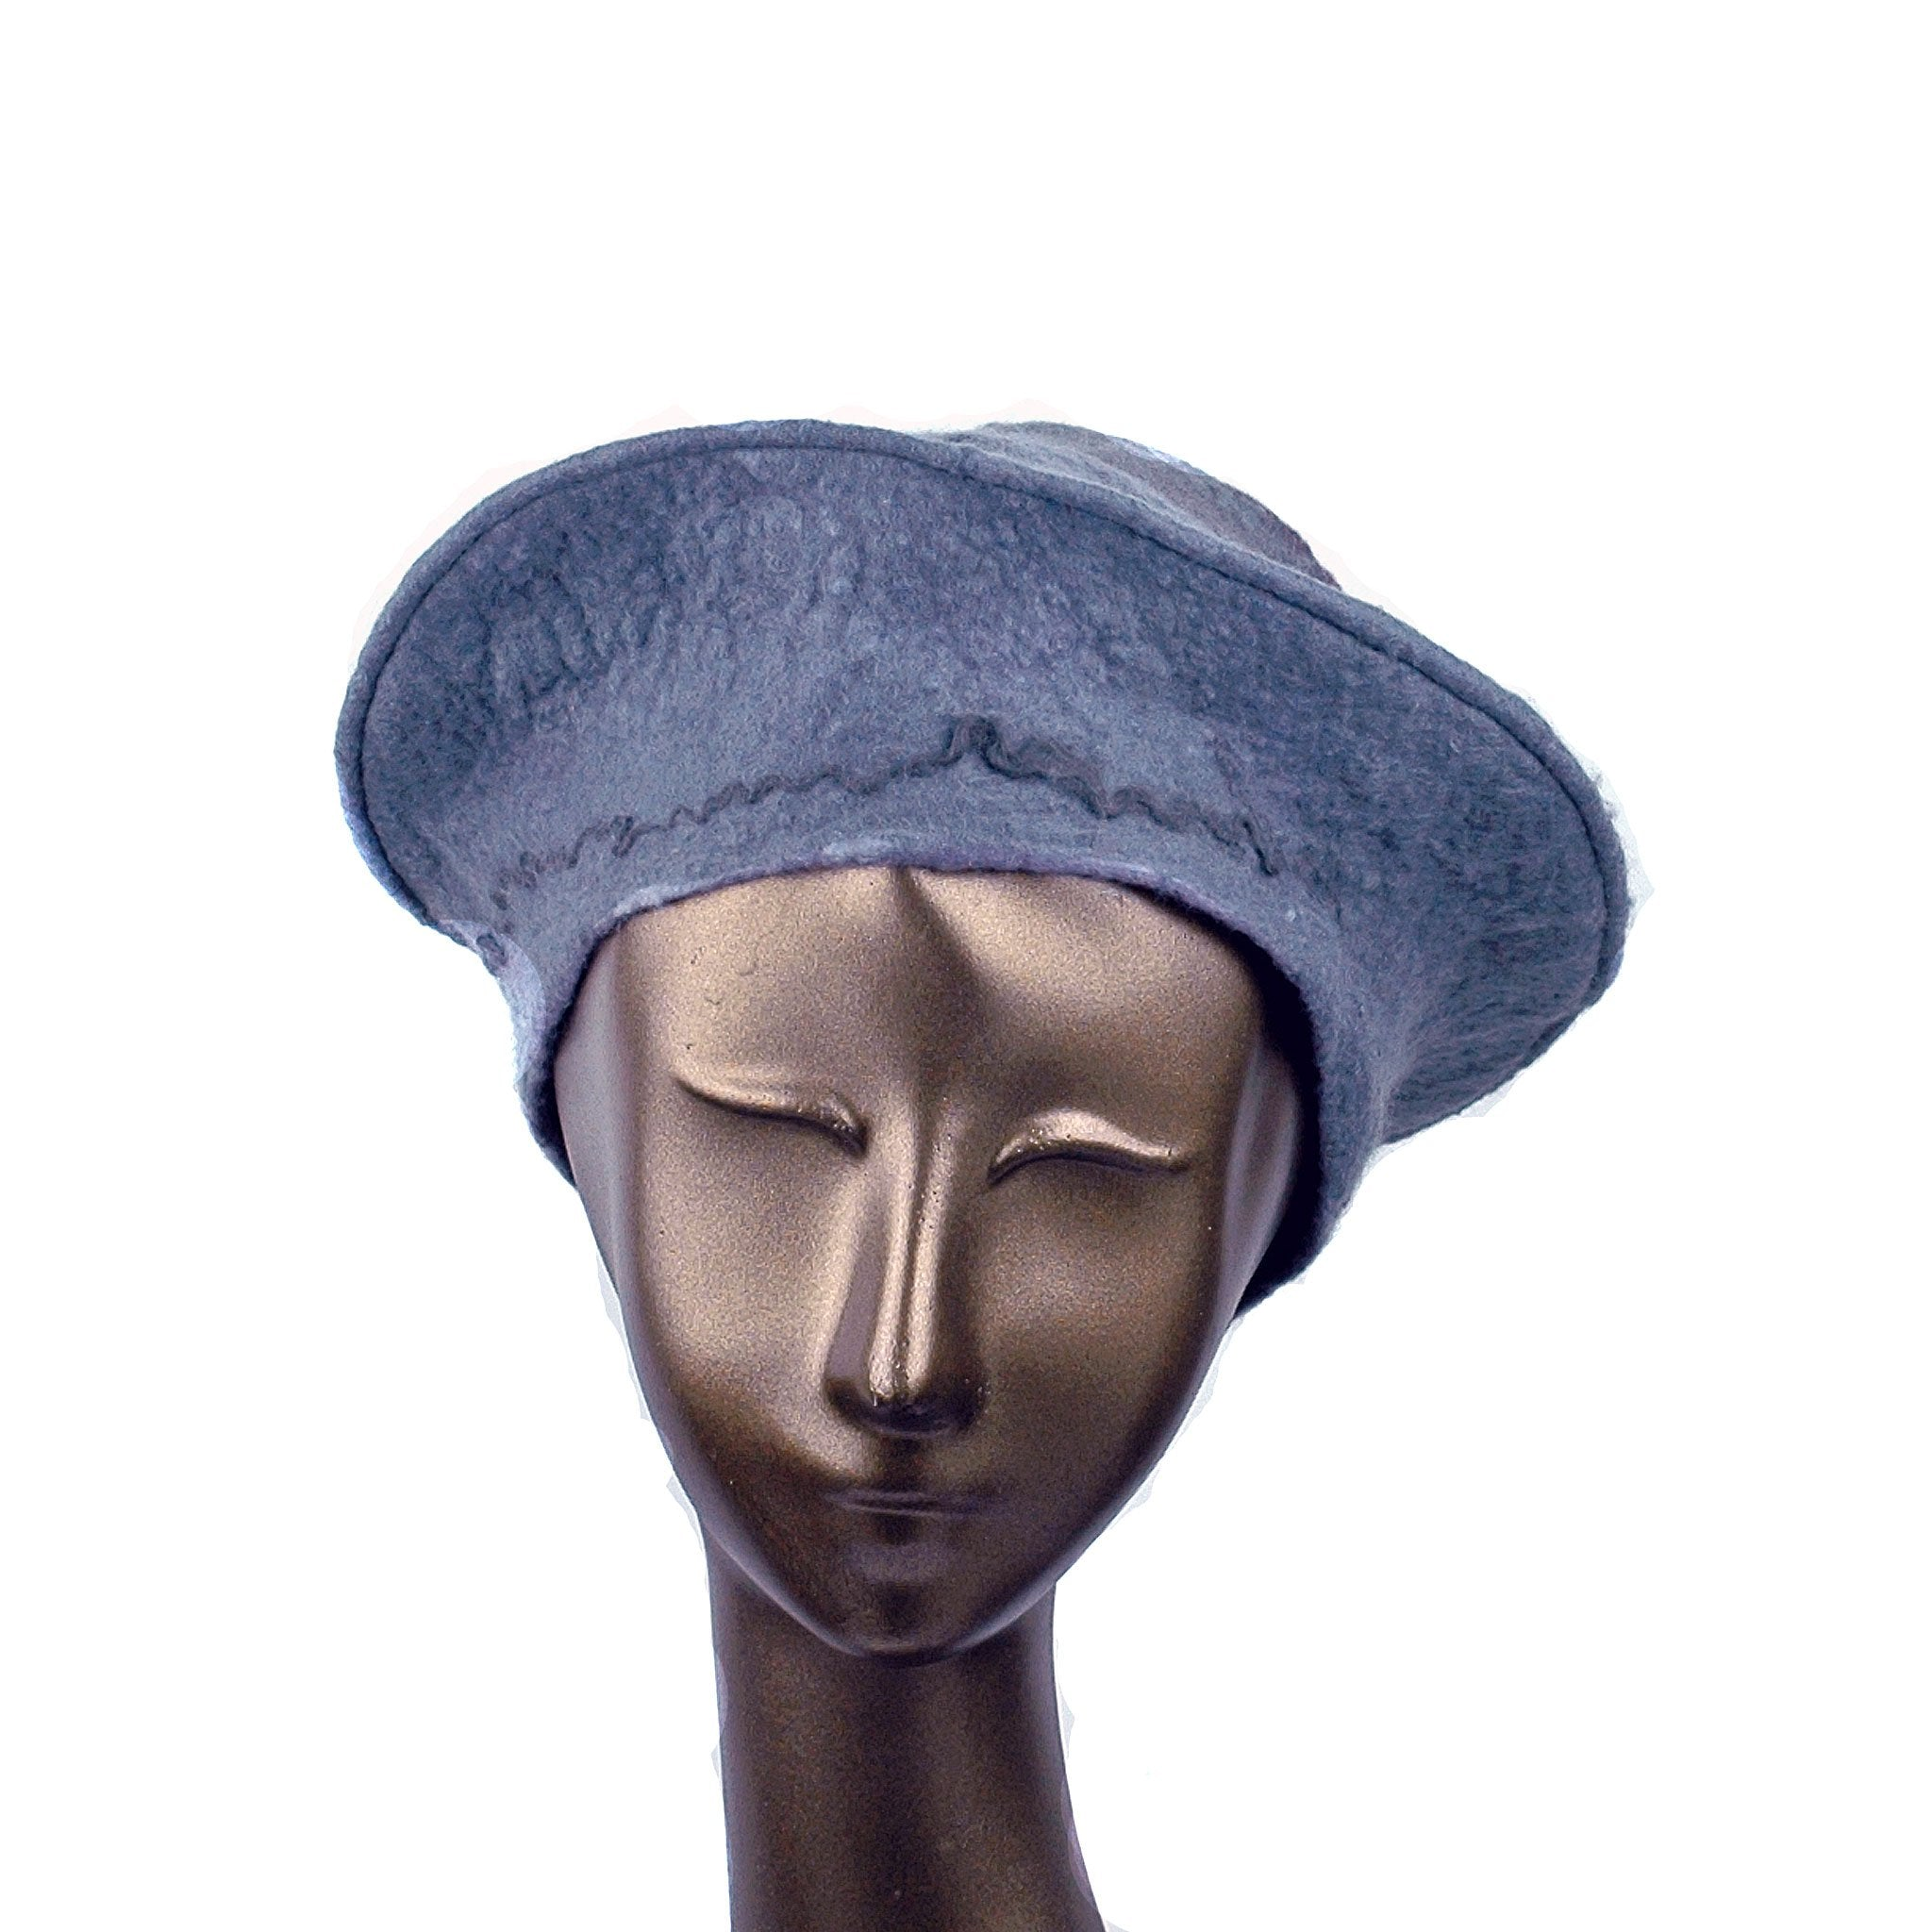 Gray Felted Beret with Crater on Top - front view